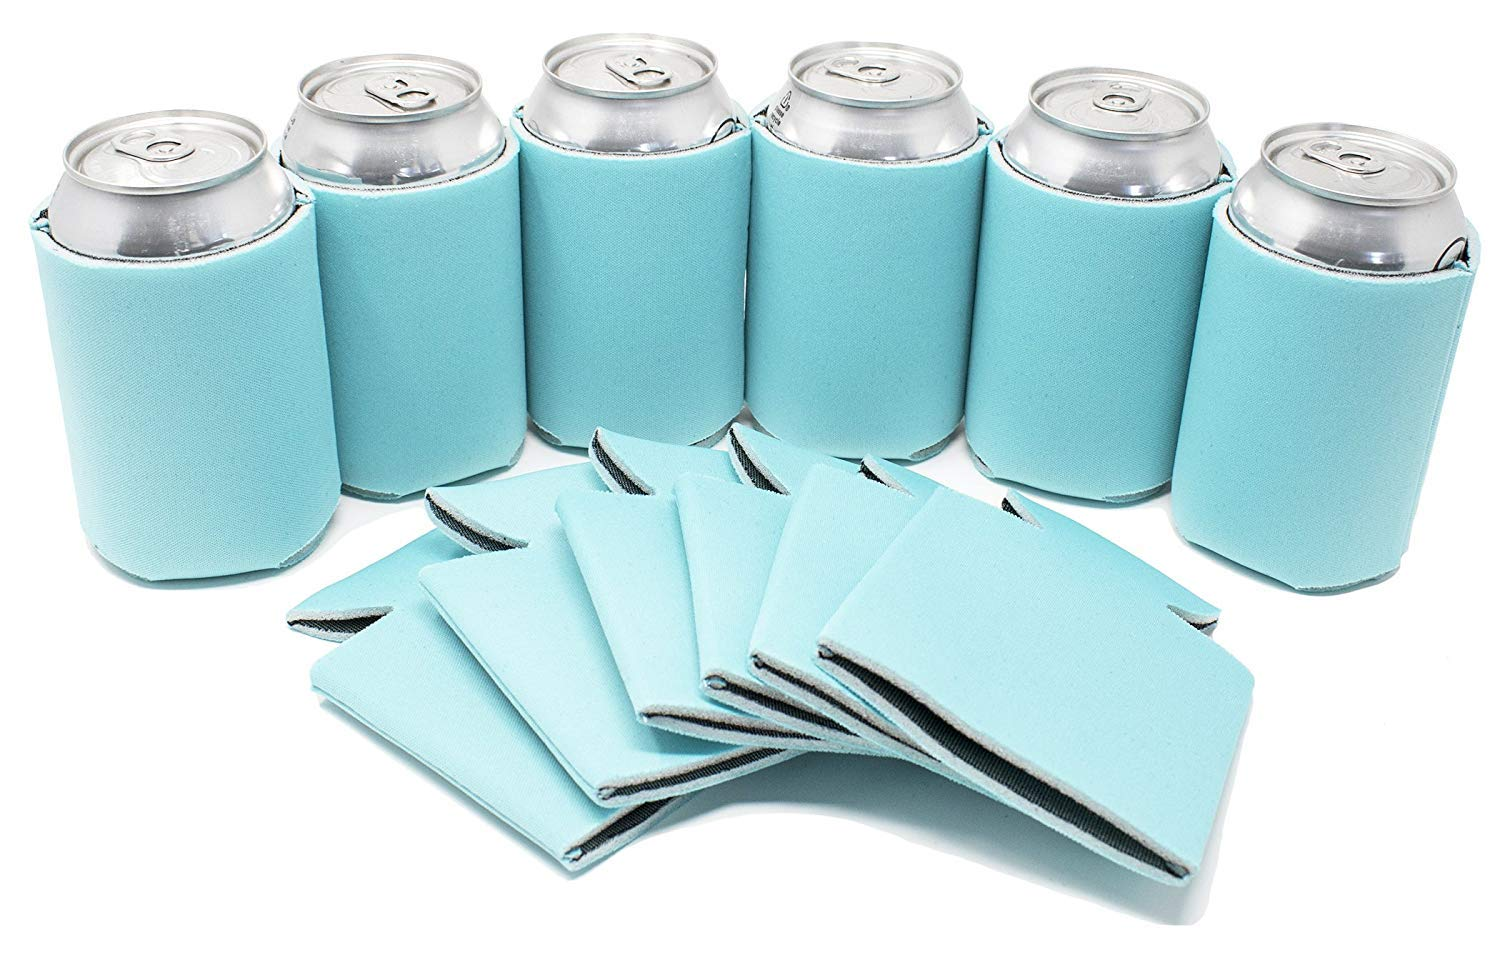 TahoeBay 12 Blank Beer Can Coolers, Plain Bulk Collapsible Soda Cover Coolies, DIY Personalized Sublimation Sleeves for Weddings, Bachelorette Parties, Funny HTV Party Favors (Robins Egg Blue, 12)